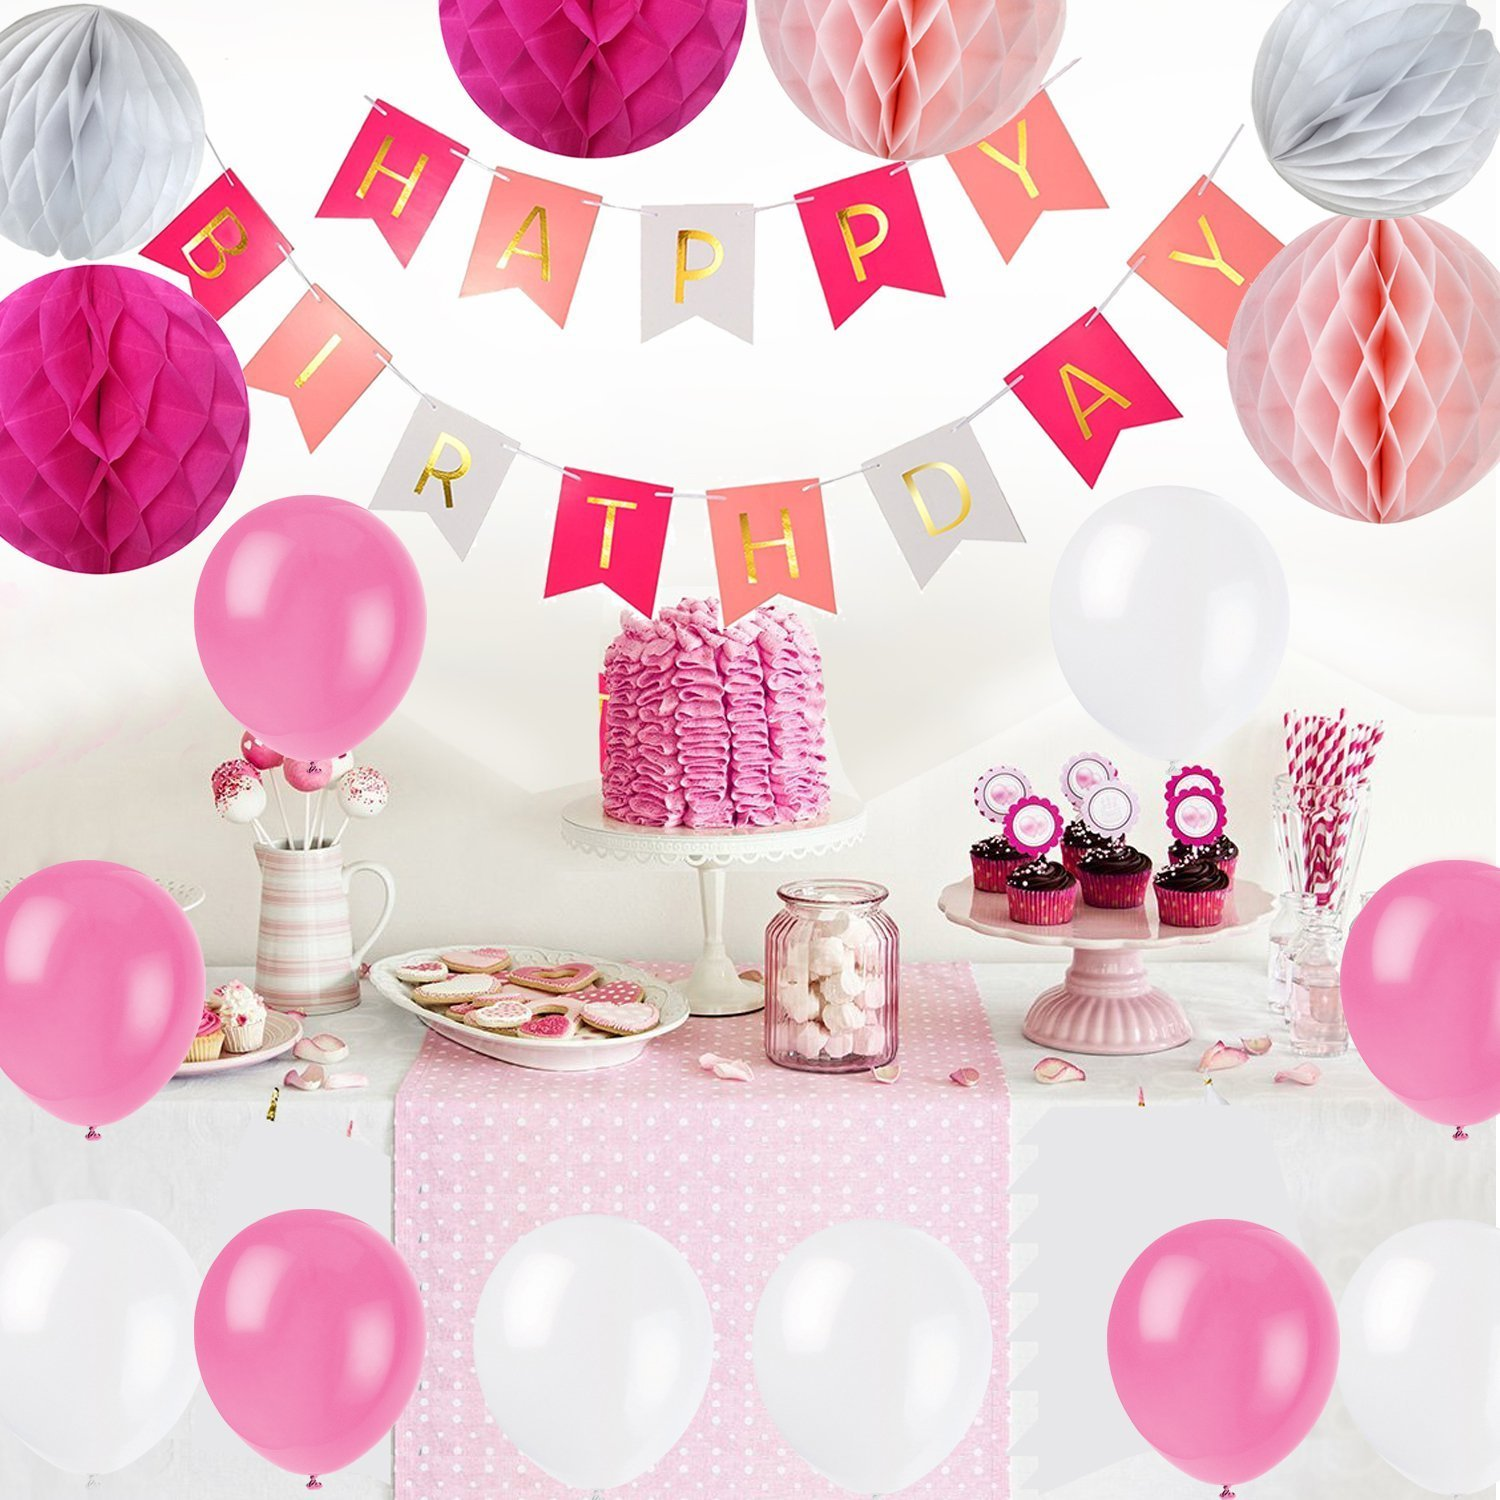 Ciaoed Happy Birthday Decorations Supplies Set Bunting Banner with Pearl Balloons,Honeycomb Balls,Folding Fan for Girl 's Party and Baby 1st Birthday Decoration Pack(Pink) Ciaoed6545